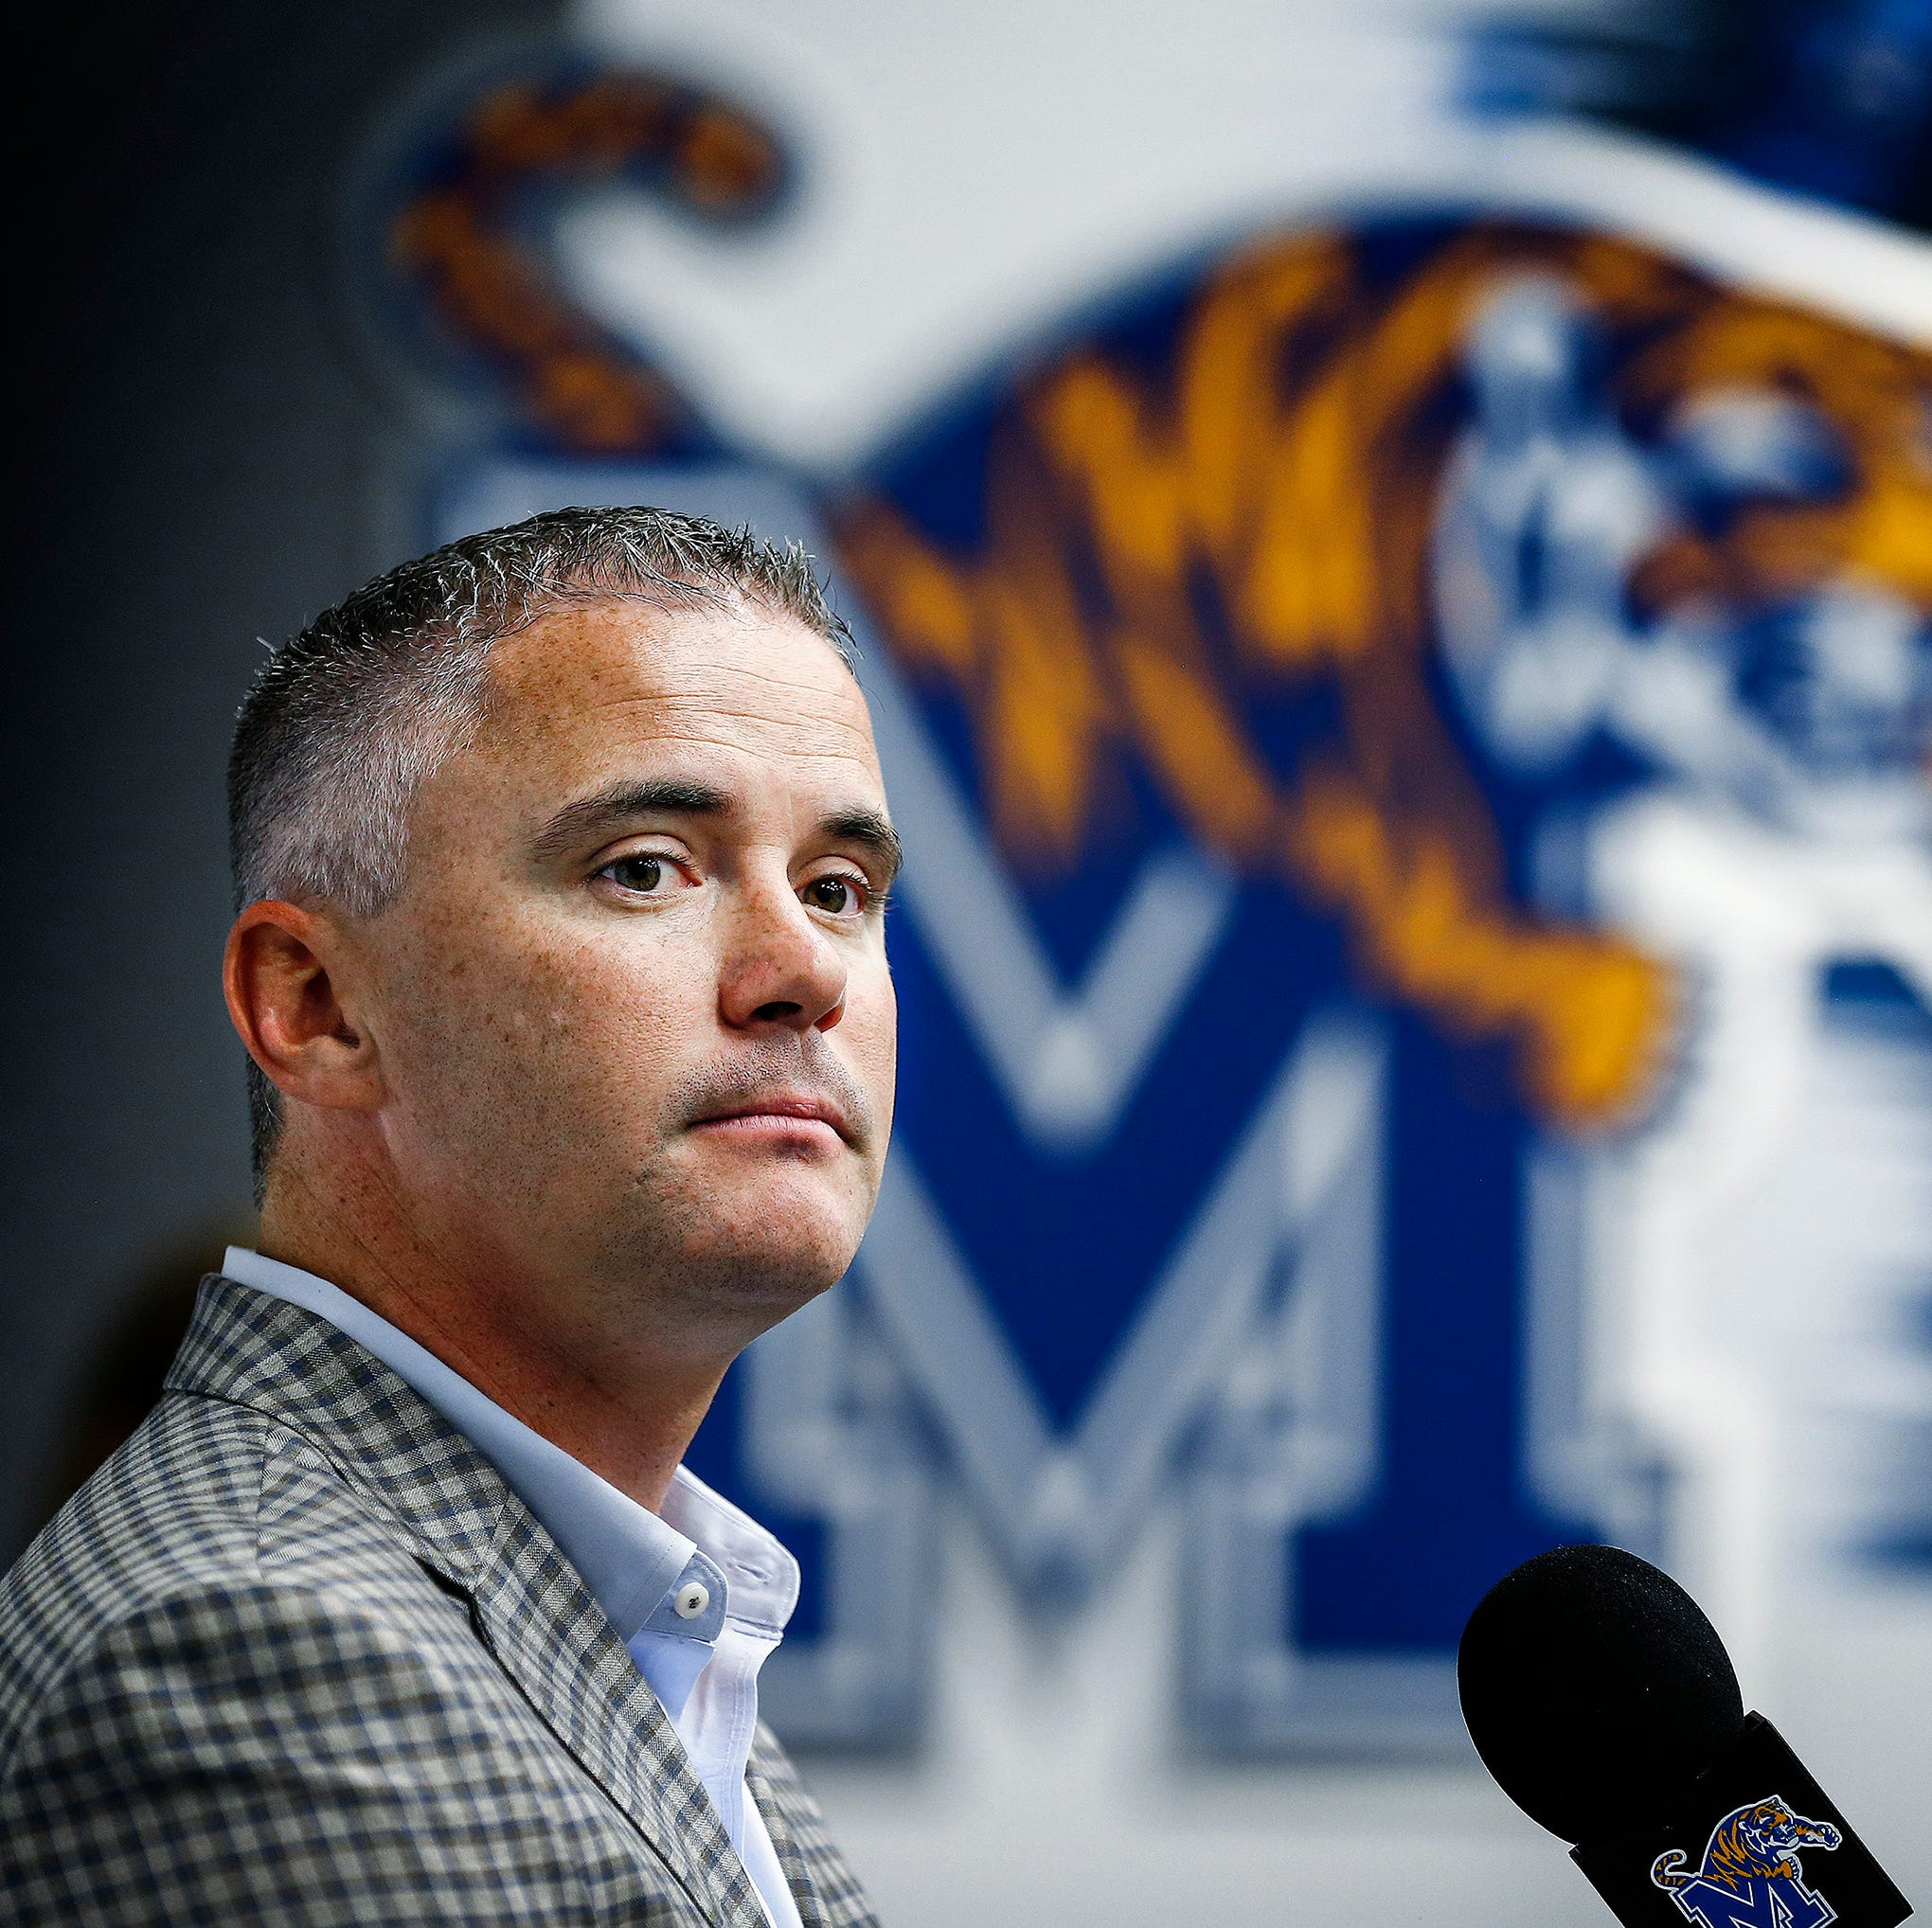 Memphis football: Where the 2019 recruiting class stands heading into early signing period